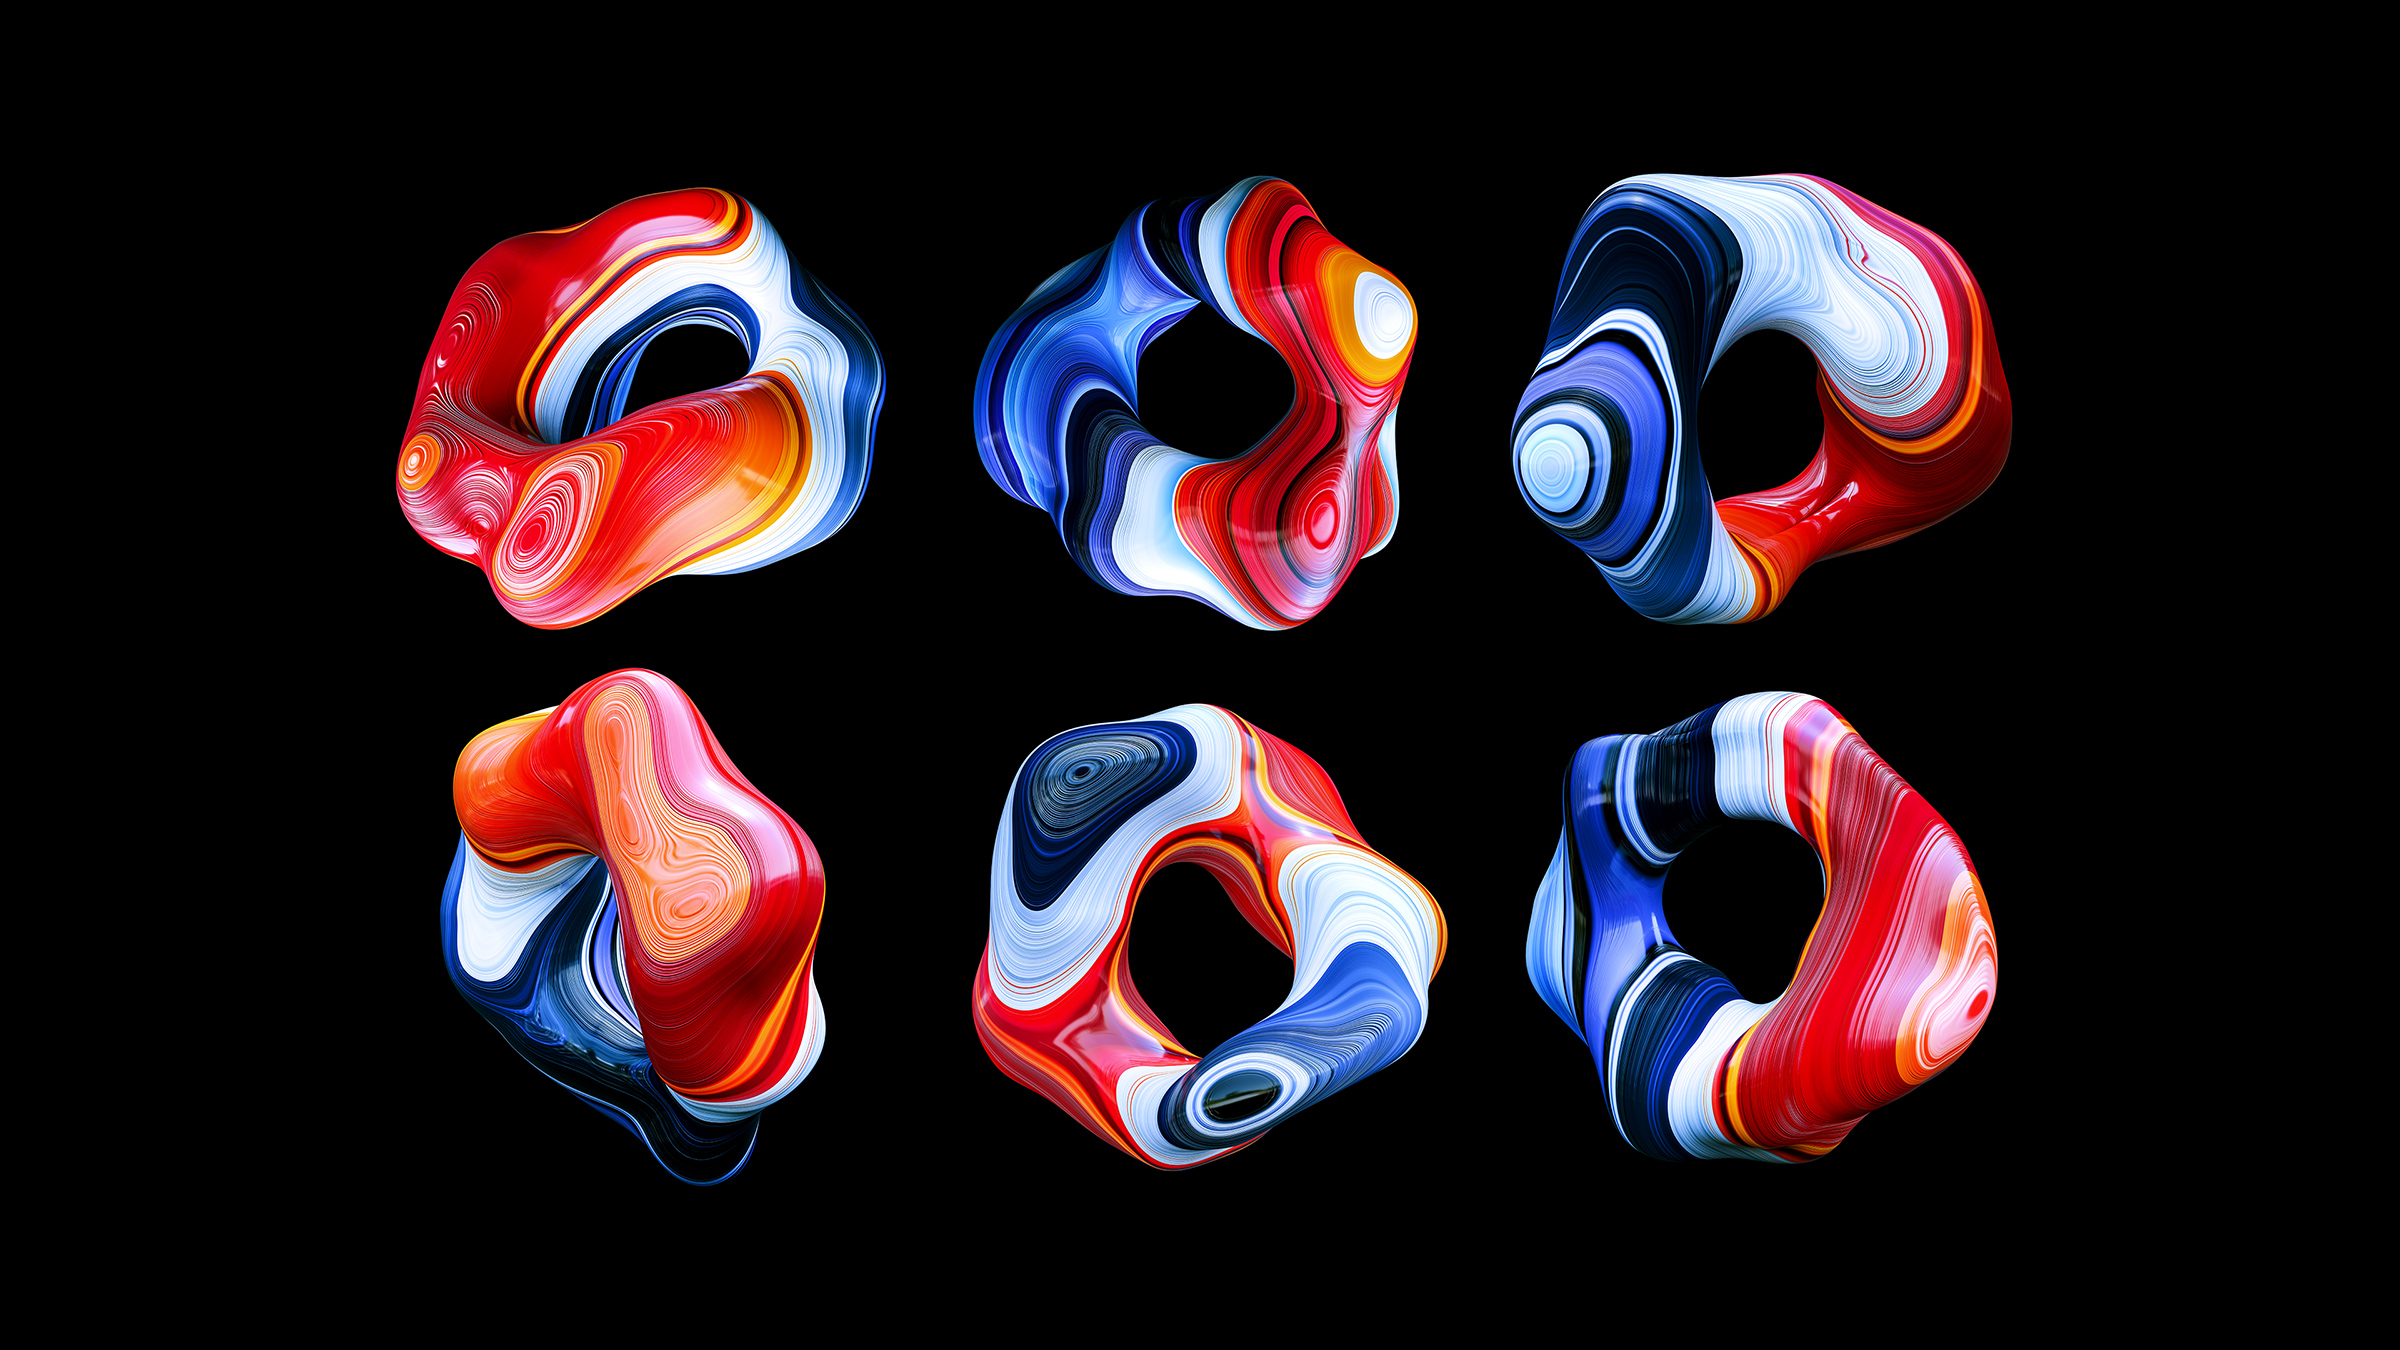 The series of supporting images. The nature of 3D means that now that the forms have been modelled - new images can be created in perpetuity.